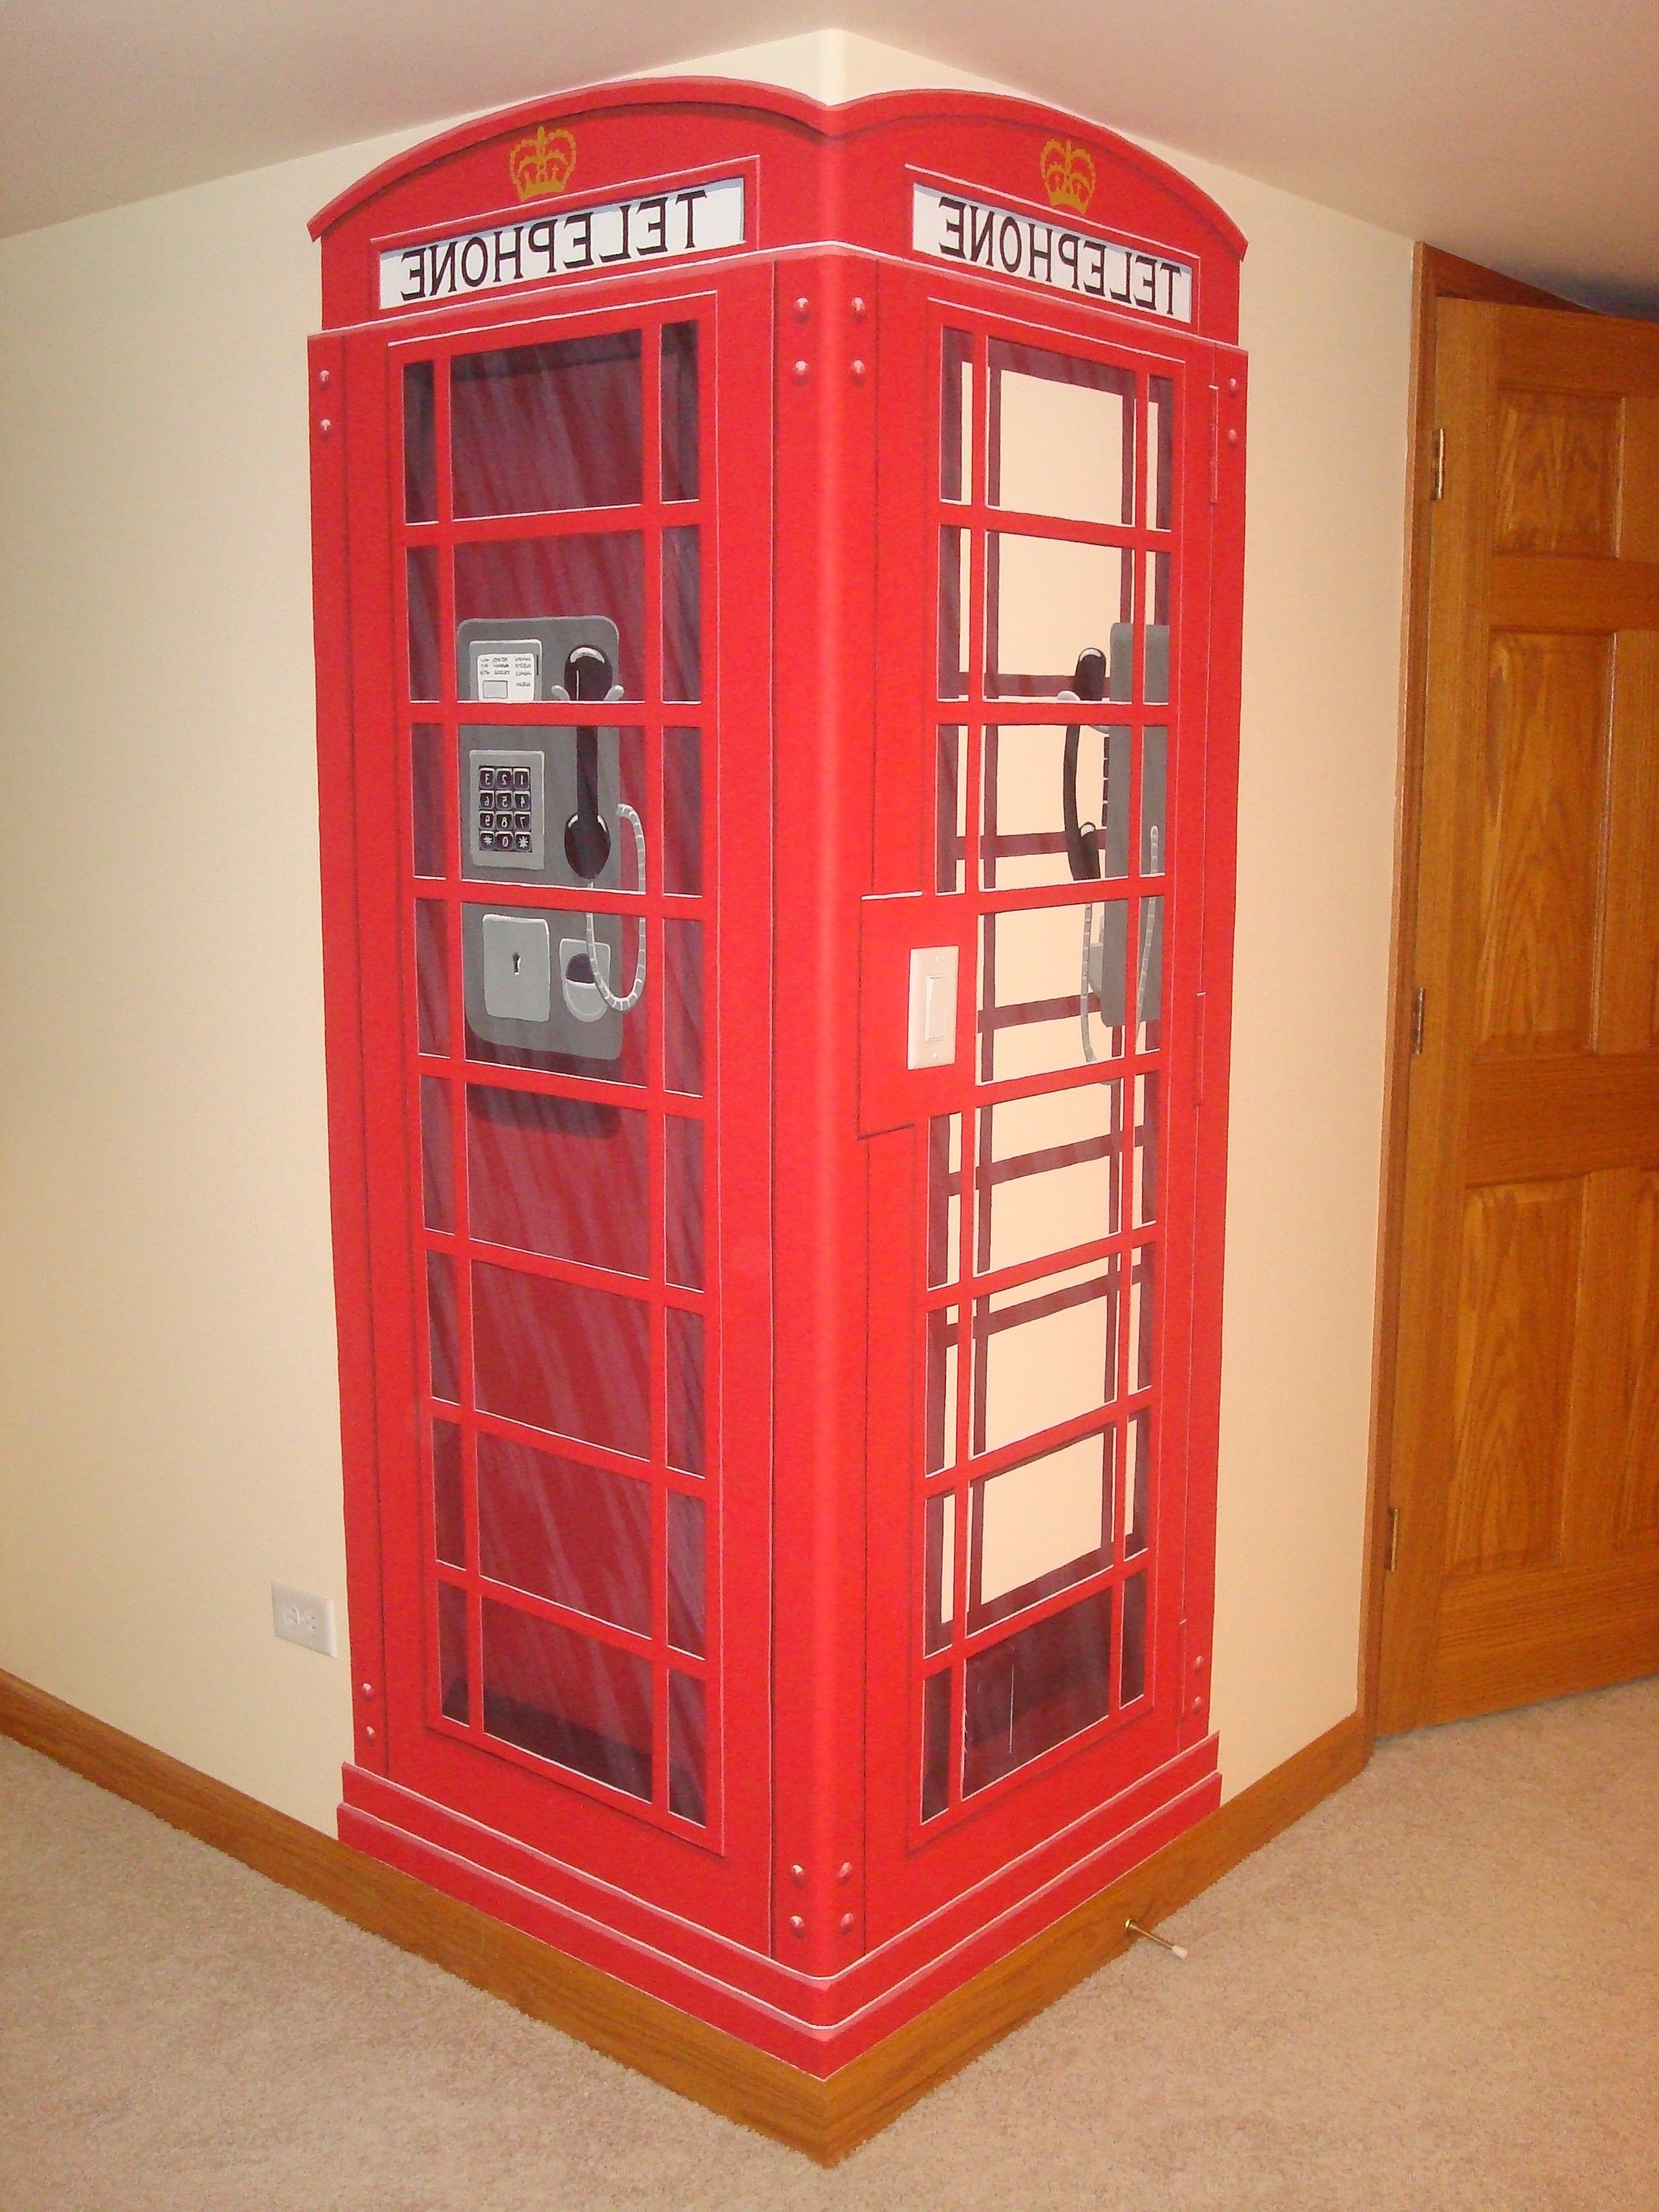 Plans For A K2 Red English Telephone Box With Dimensions (View 7 of 15)